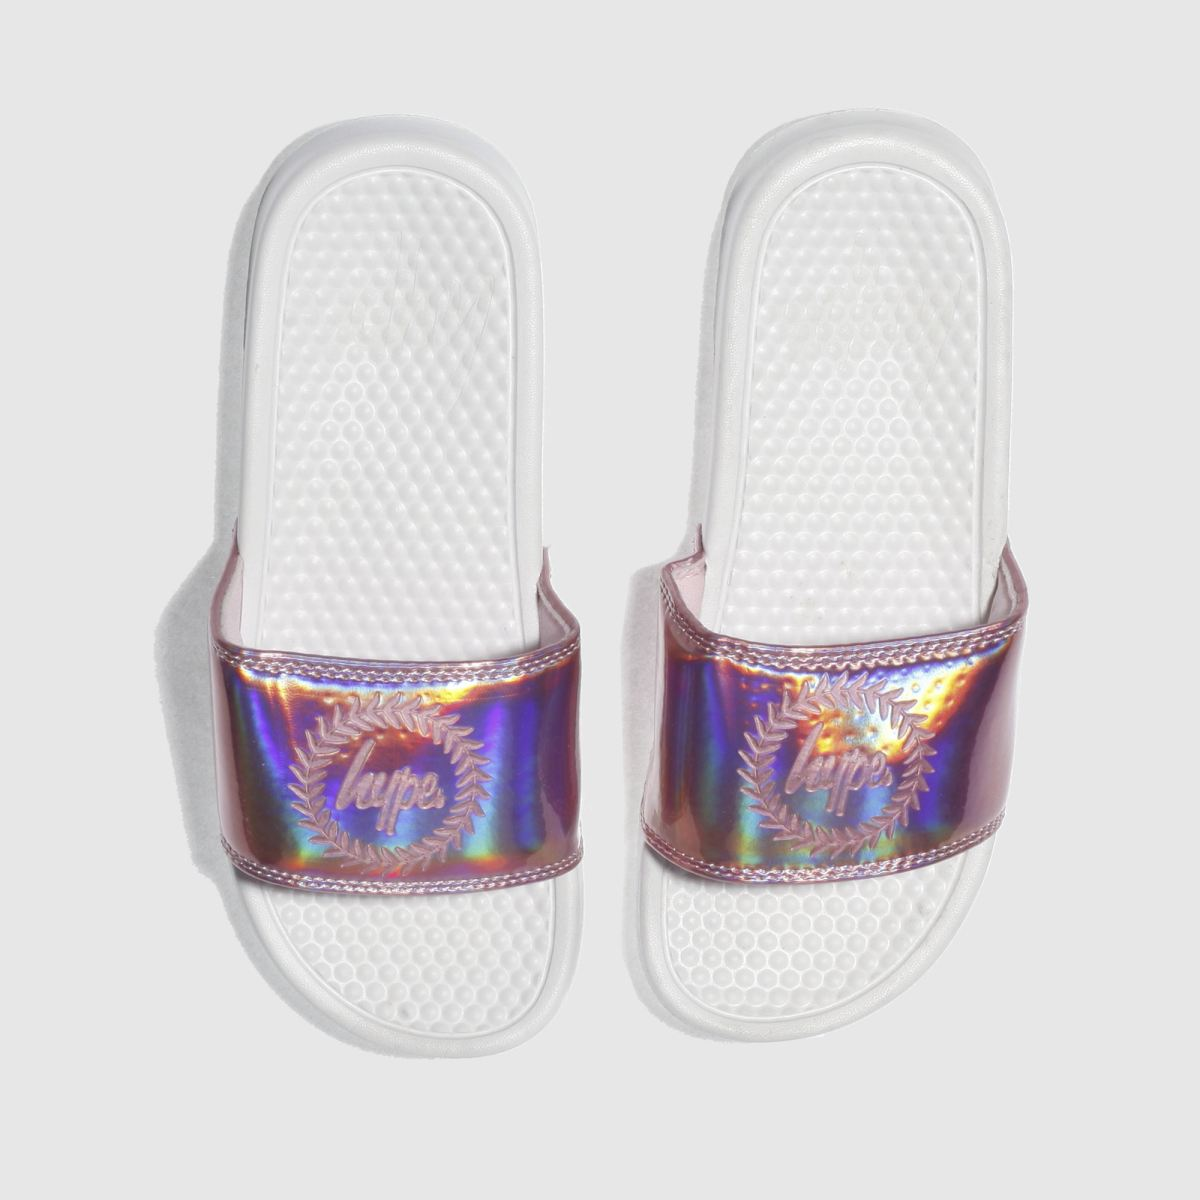 Hype Hype Pink Holographic Slider Sandals